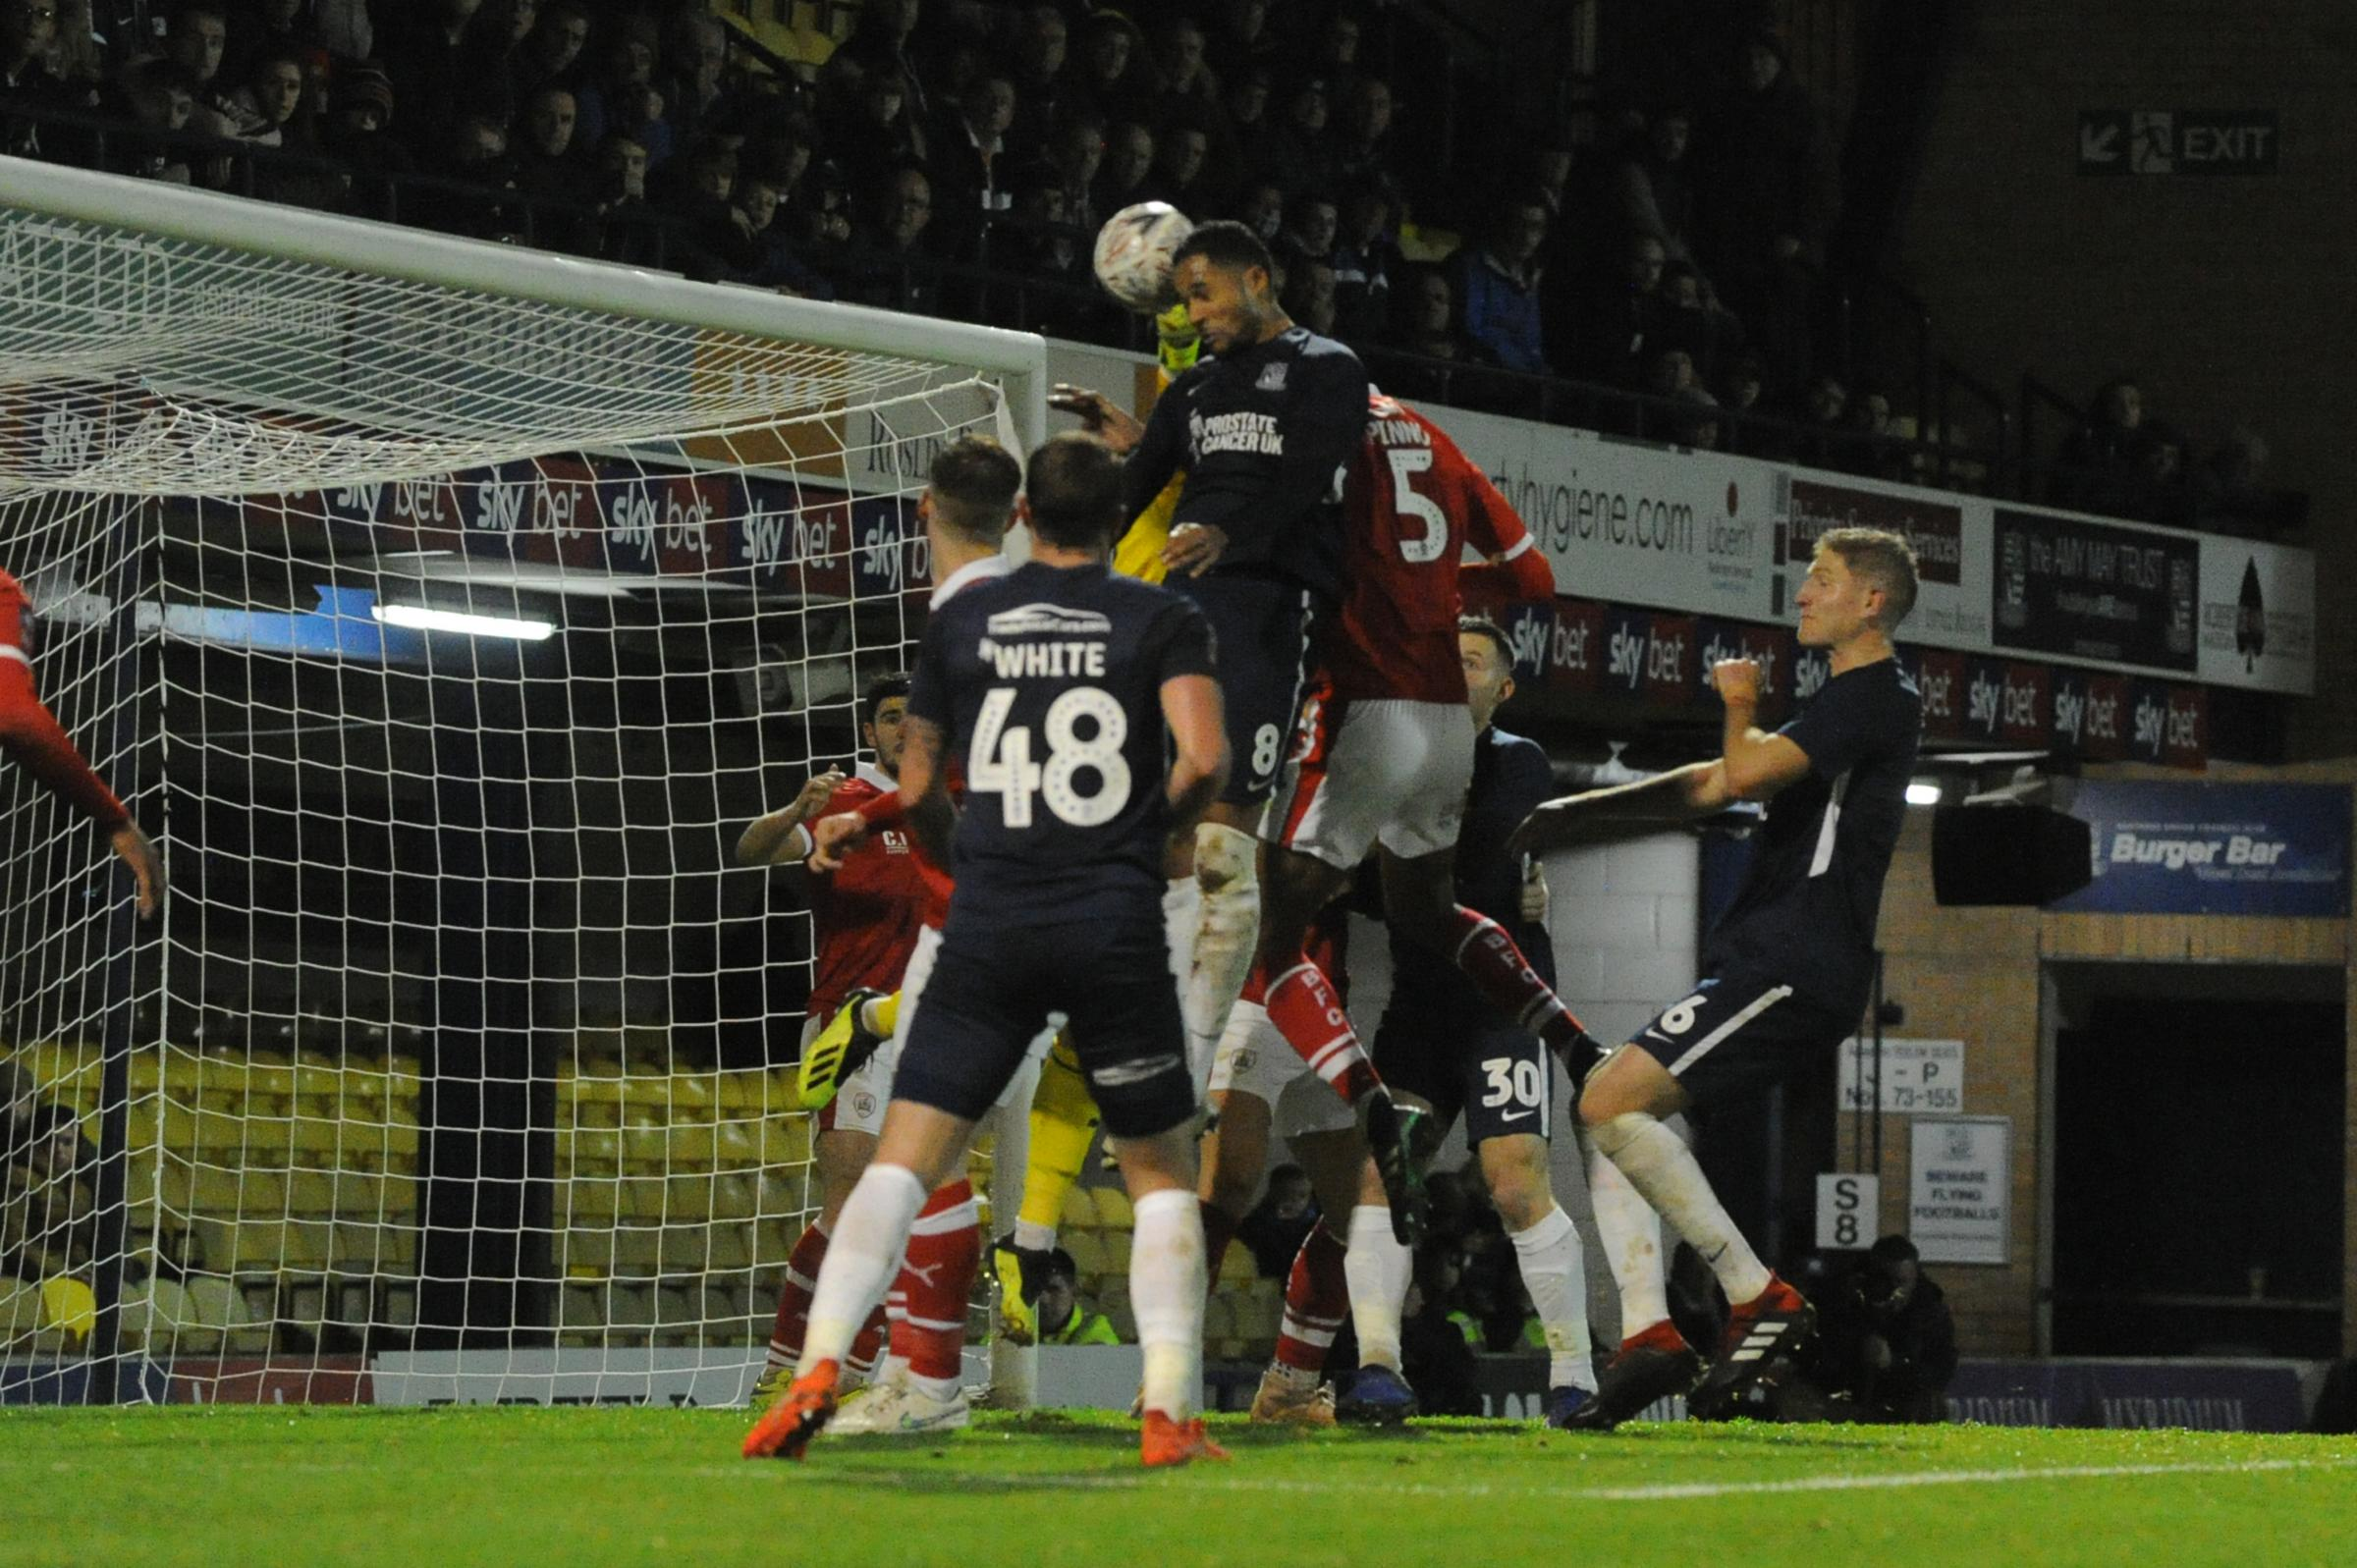 Heading home - Timothee Dieng nets Blues' second goal against Barnsley